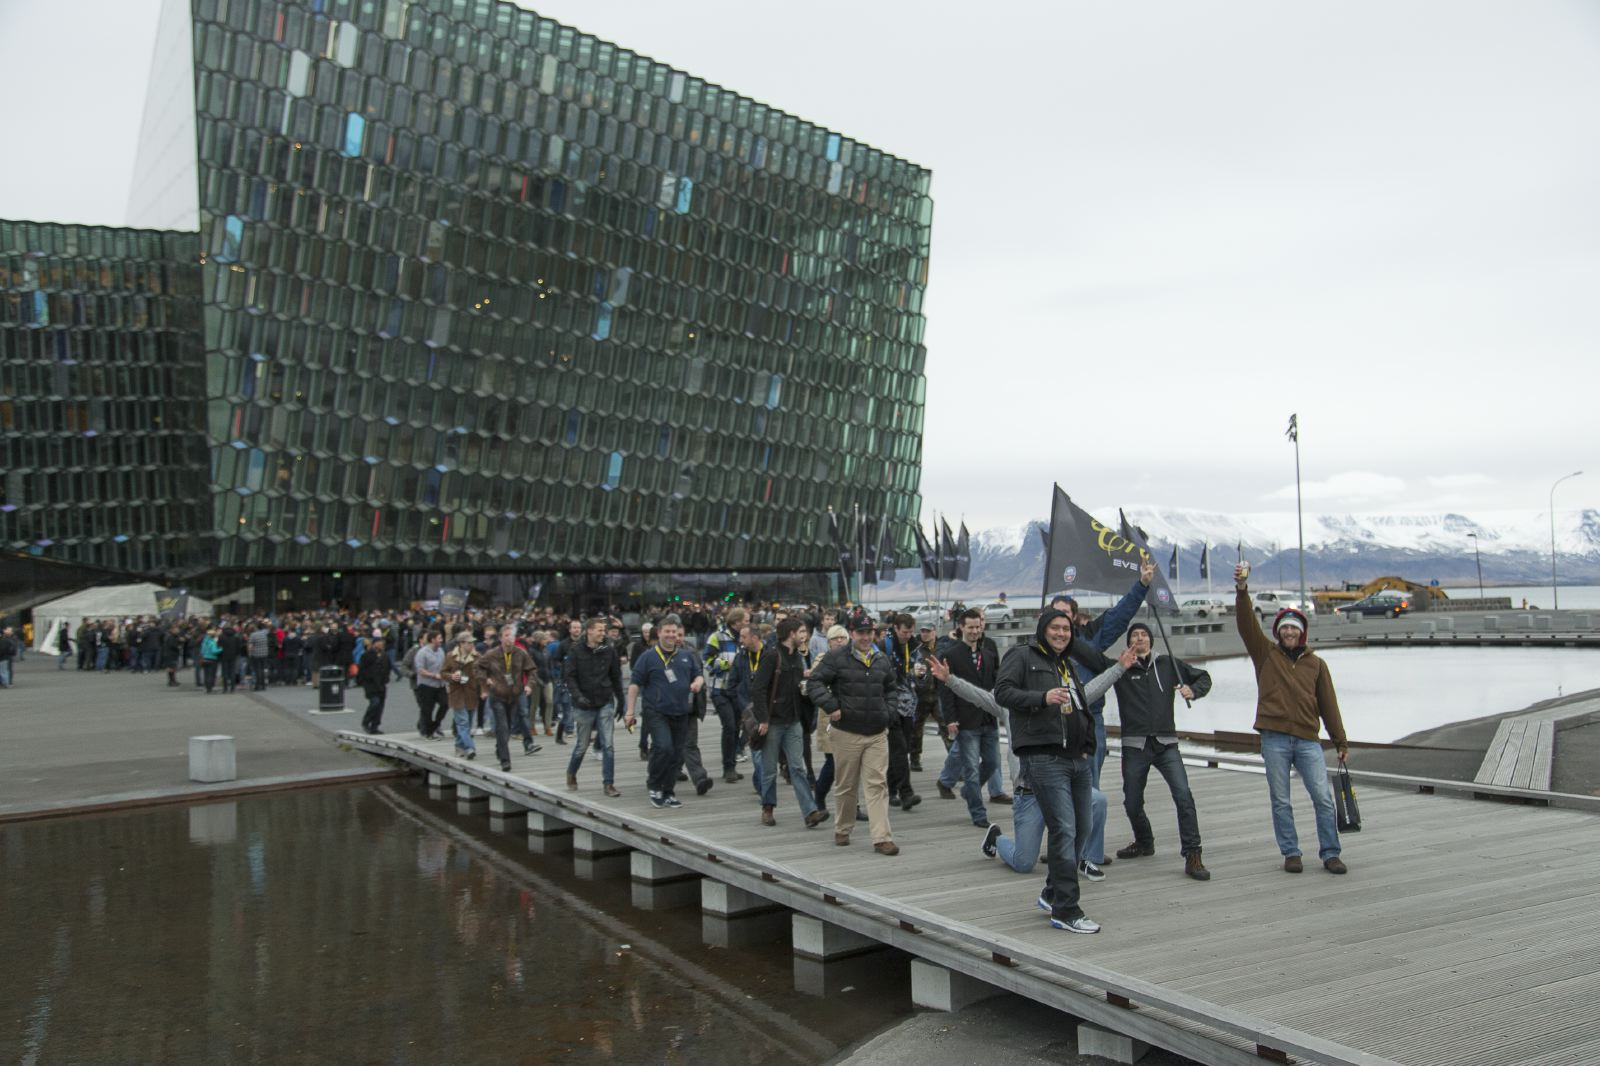 eve-fanfest-2014-harpa-center